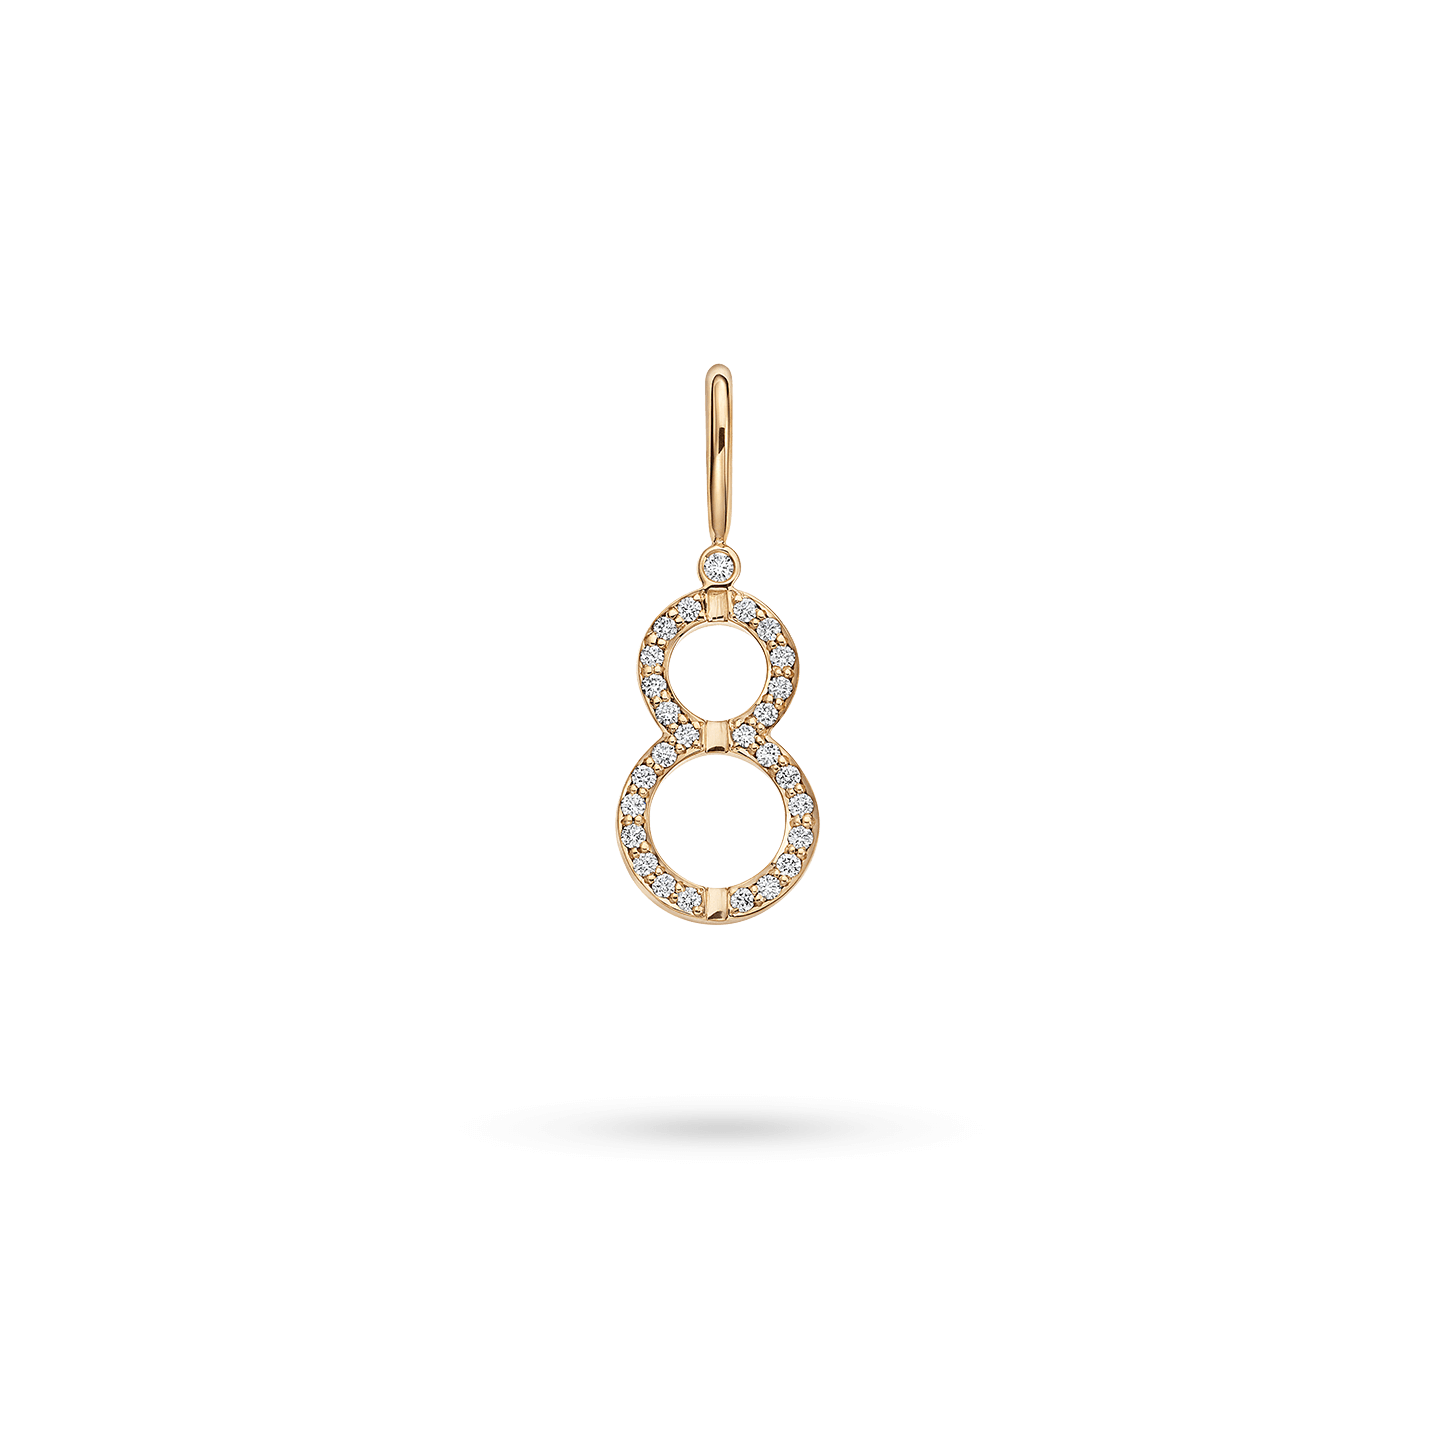 Harry Winston Lucky Eight Charm in Yellow Gold, Product Image 1